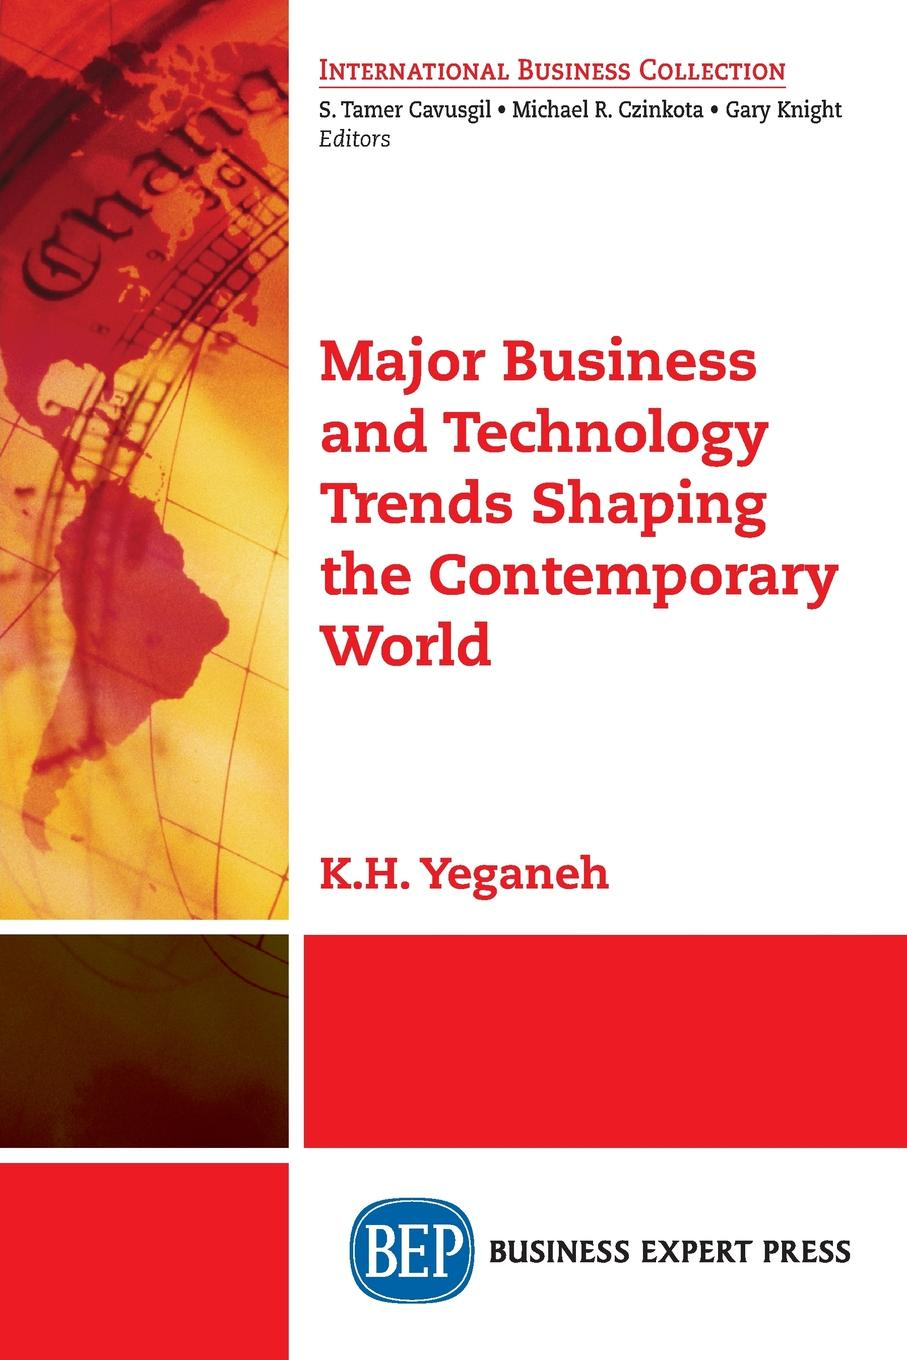 лучшая цена K.H. Yeganeh Major Business and Technology Trends Shaping the Contemporary World